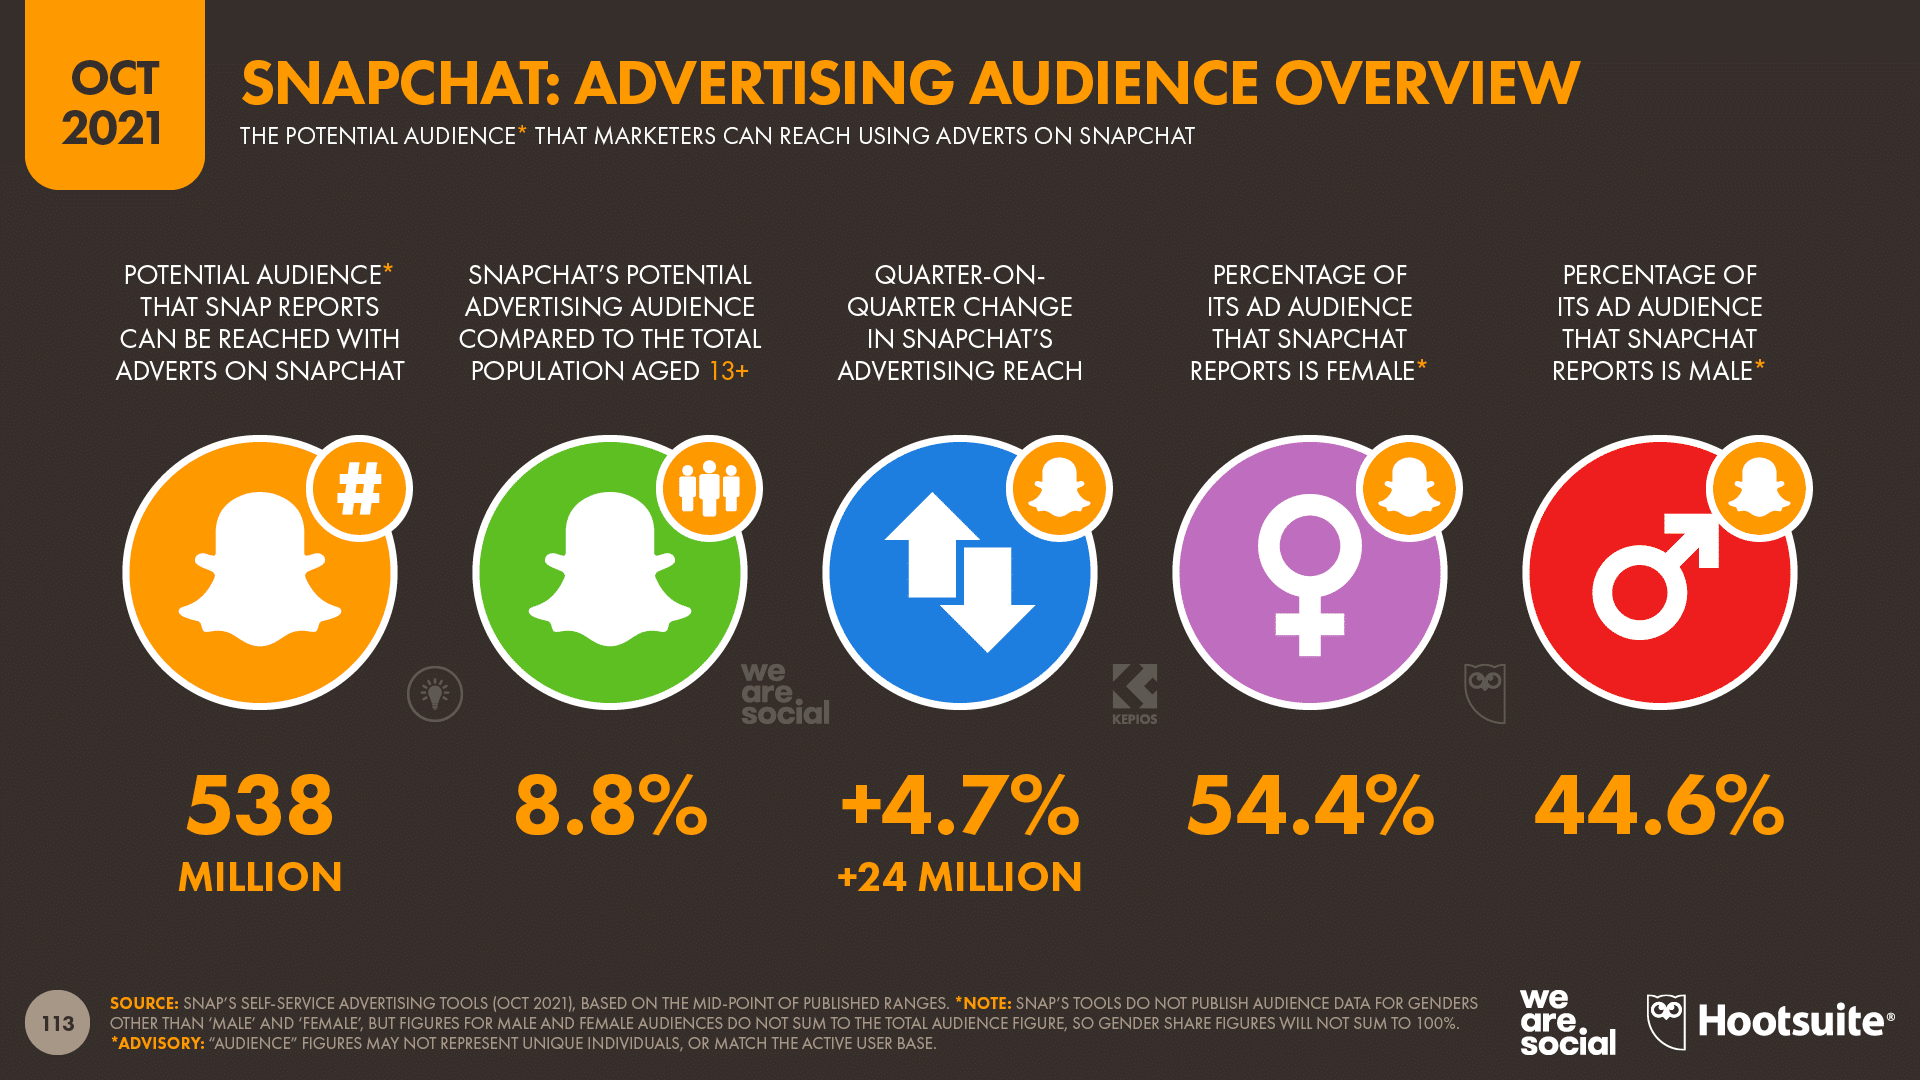 chart showing Snapchat: Advertising Audience Overview